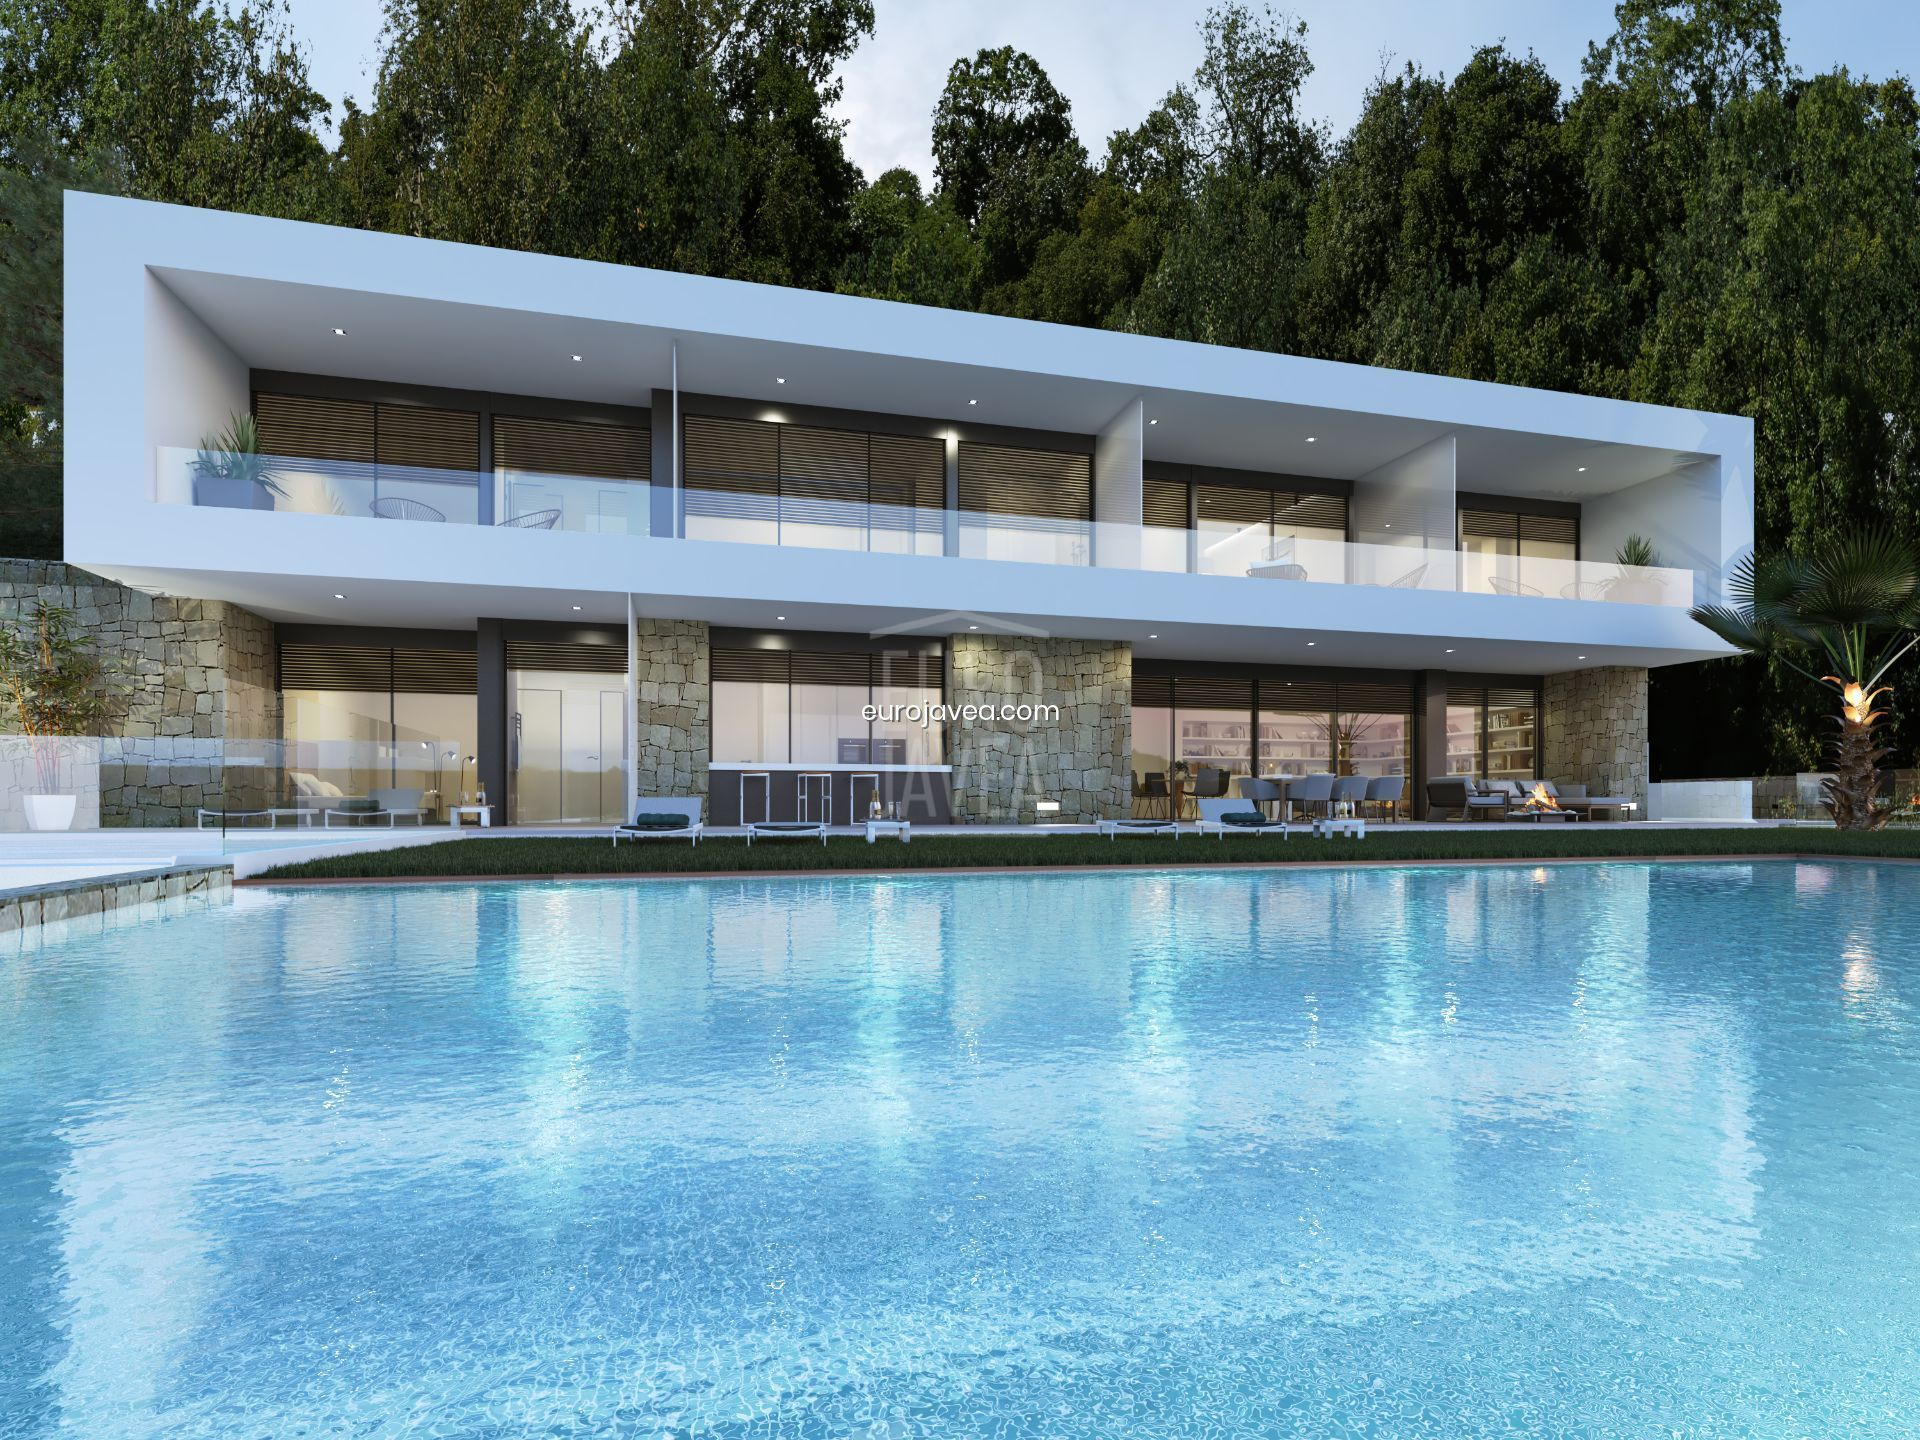 Contemporary style villa project for sale in Jávea in Cuesta de San Antonio, with the most amazing views from right above the port overlooking the bay of Jávea .